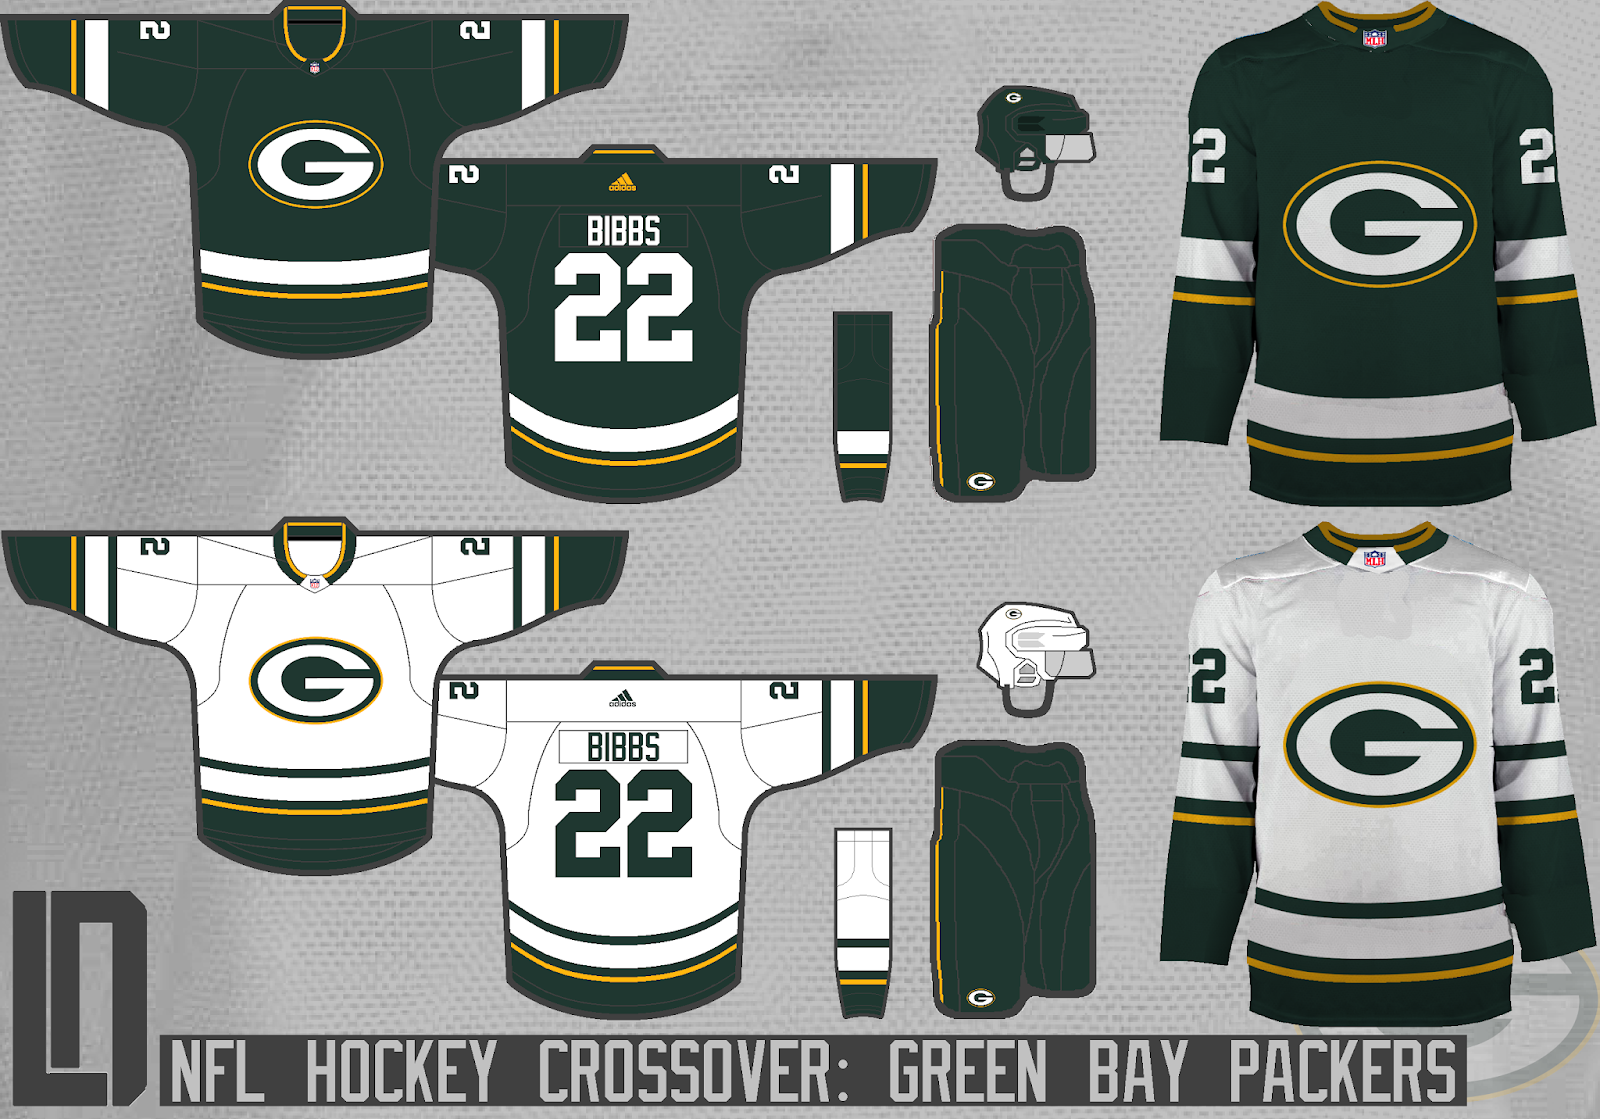 Green+Bay+Packers+Concept.png